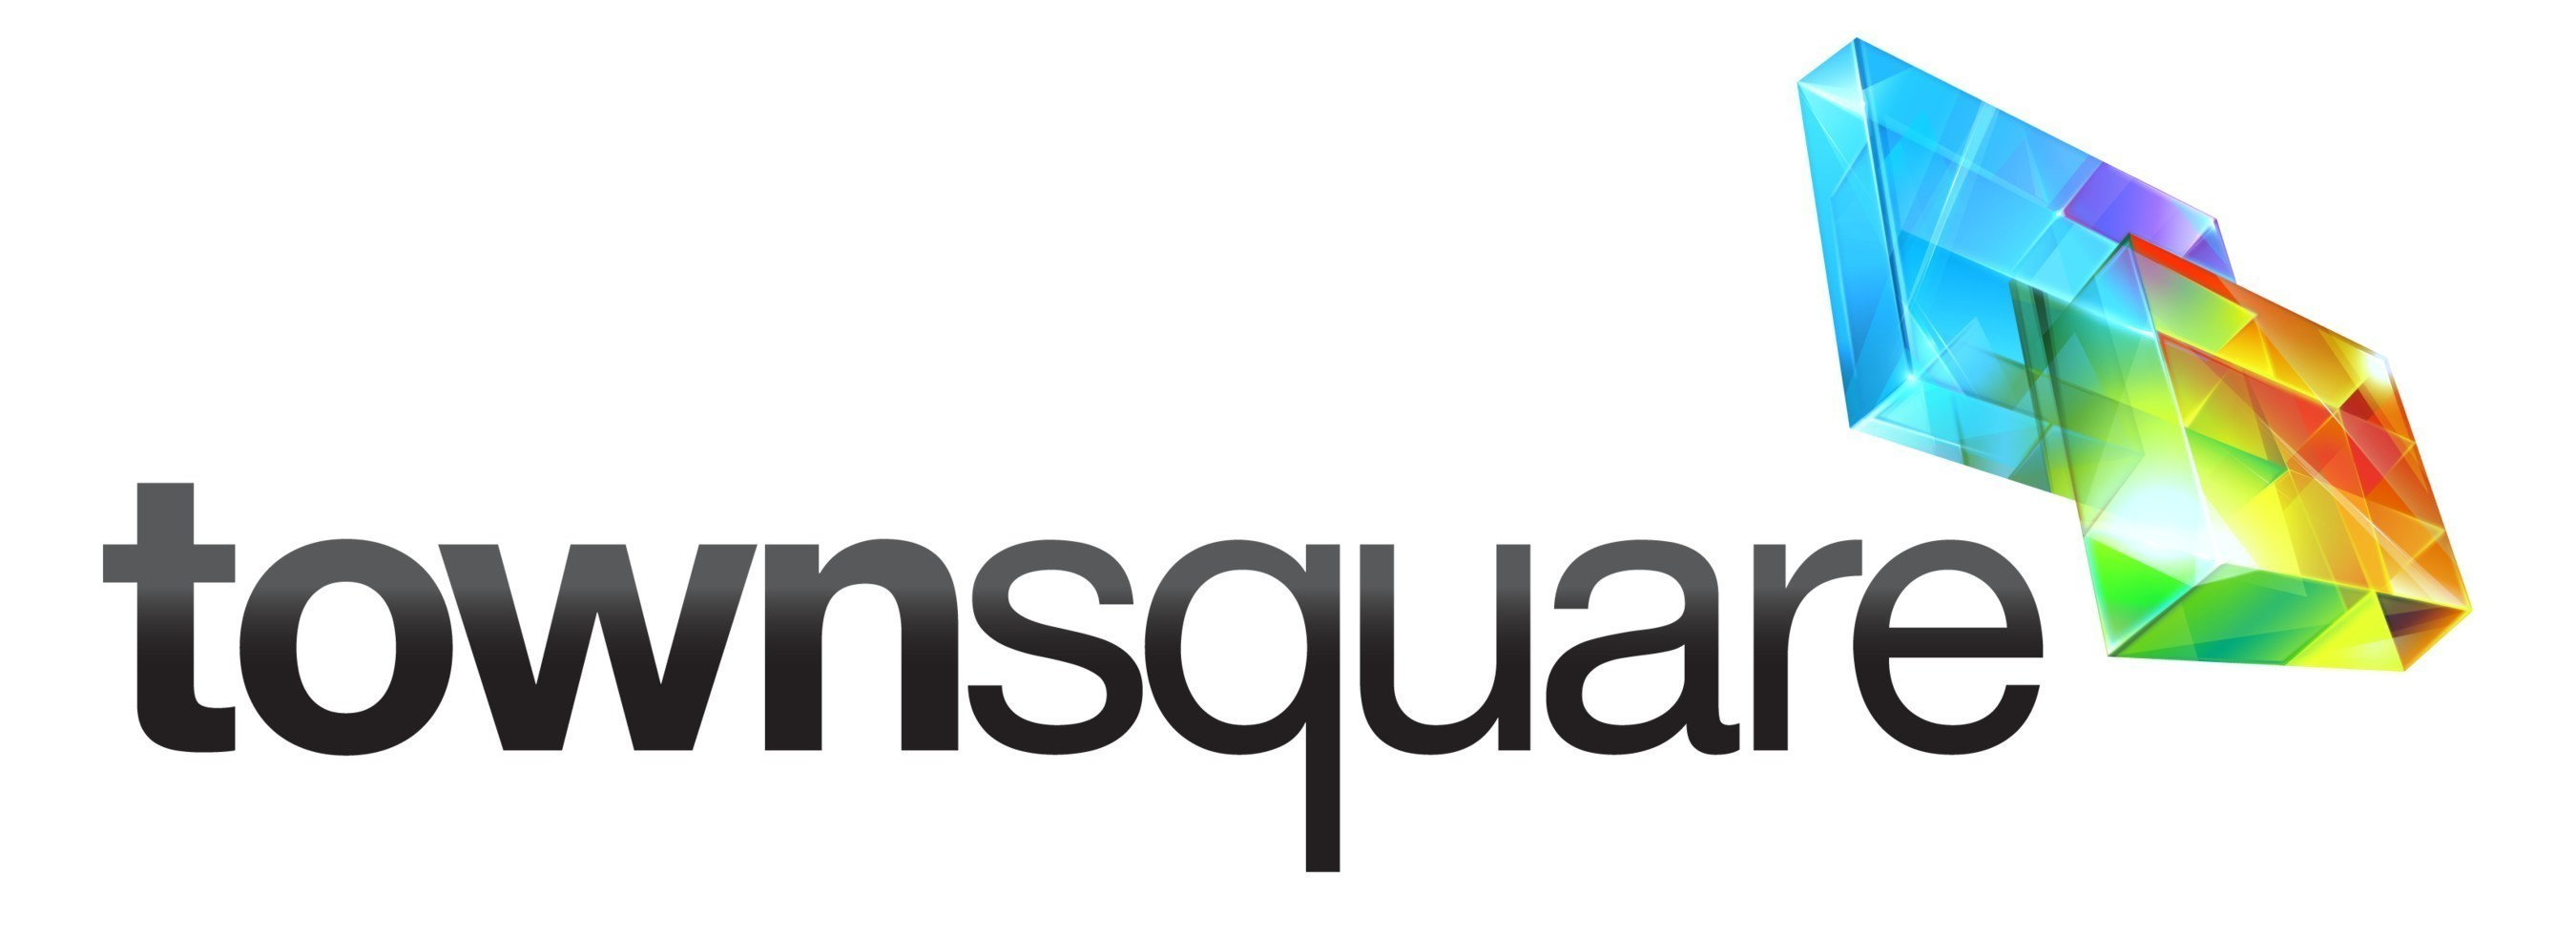 Townsquare Announces Conference Call To Discuss Second Quarter 2016 Results